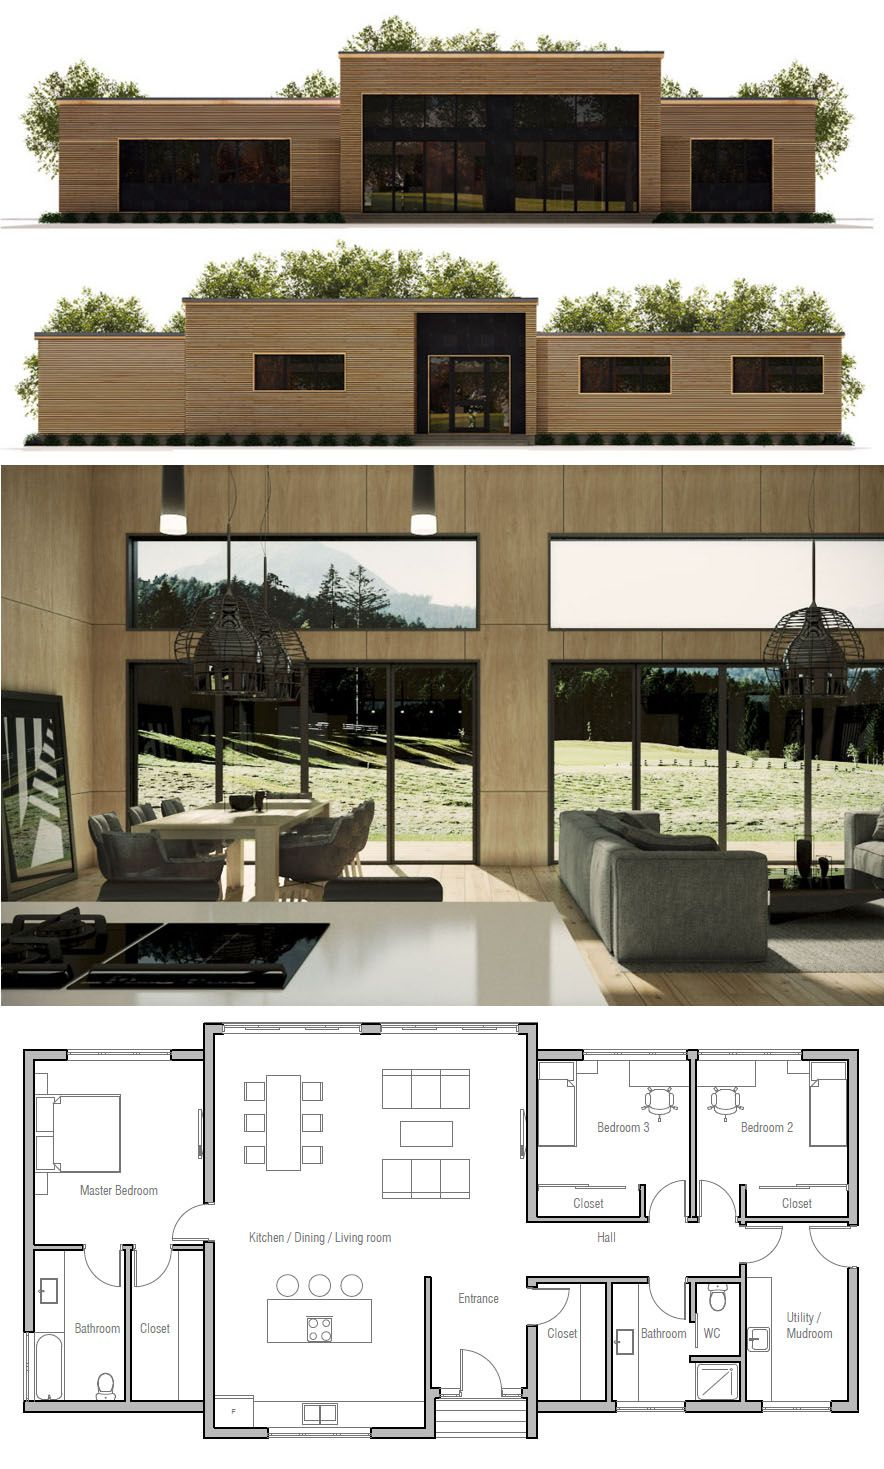 Shipping container home plans new decor metal houses modular prefab house designs also rh pinterest